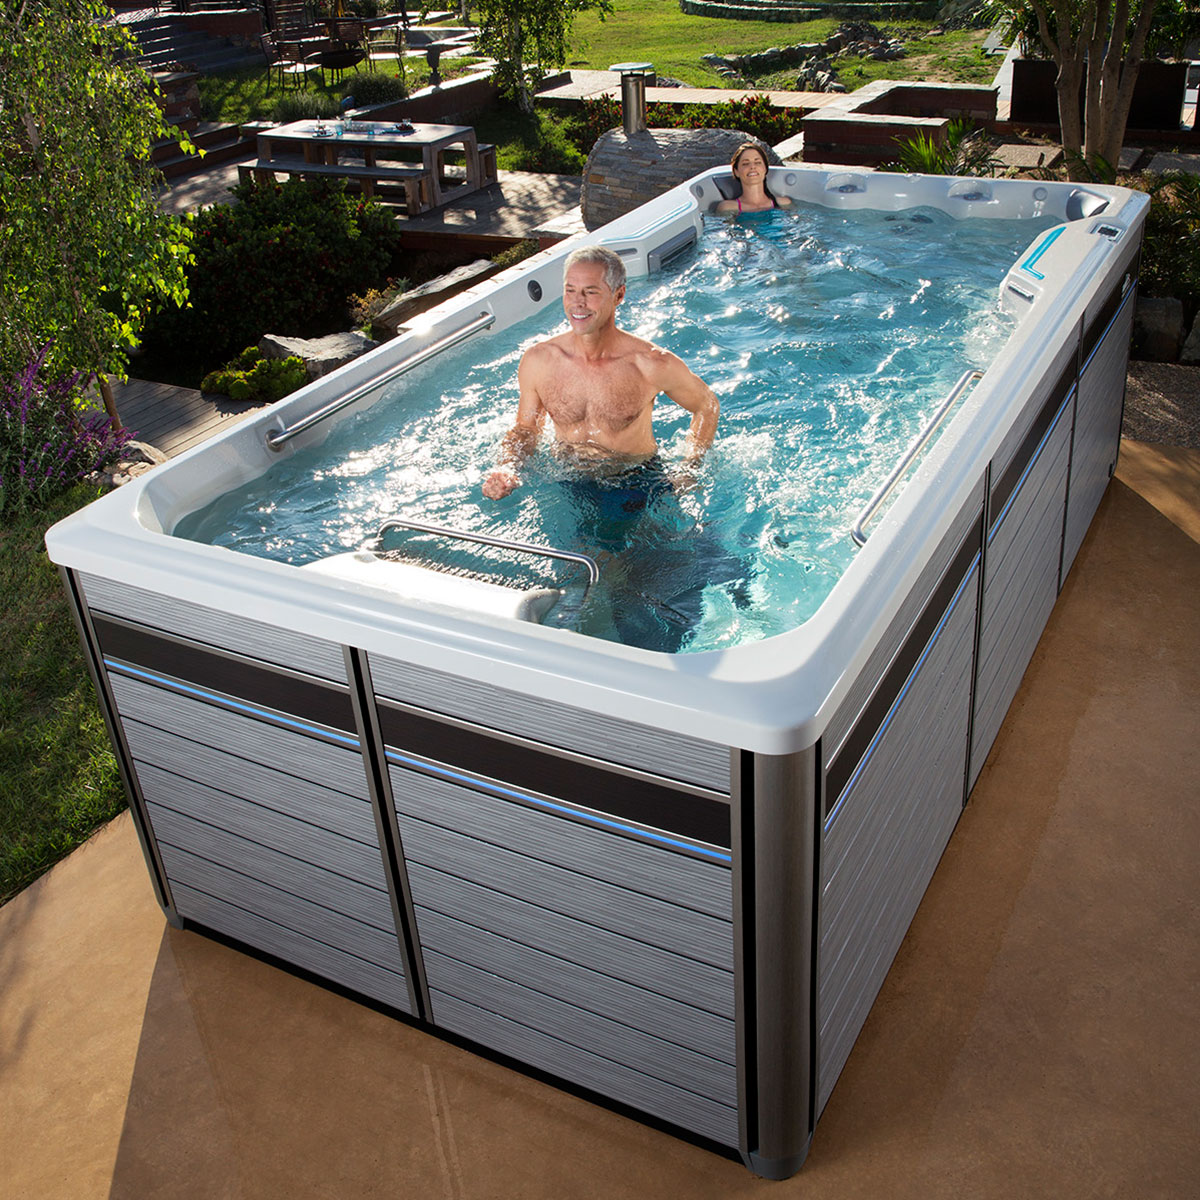 Find Your Perfect Swim Spa - Low Prices on Lap Pools Atascadero